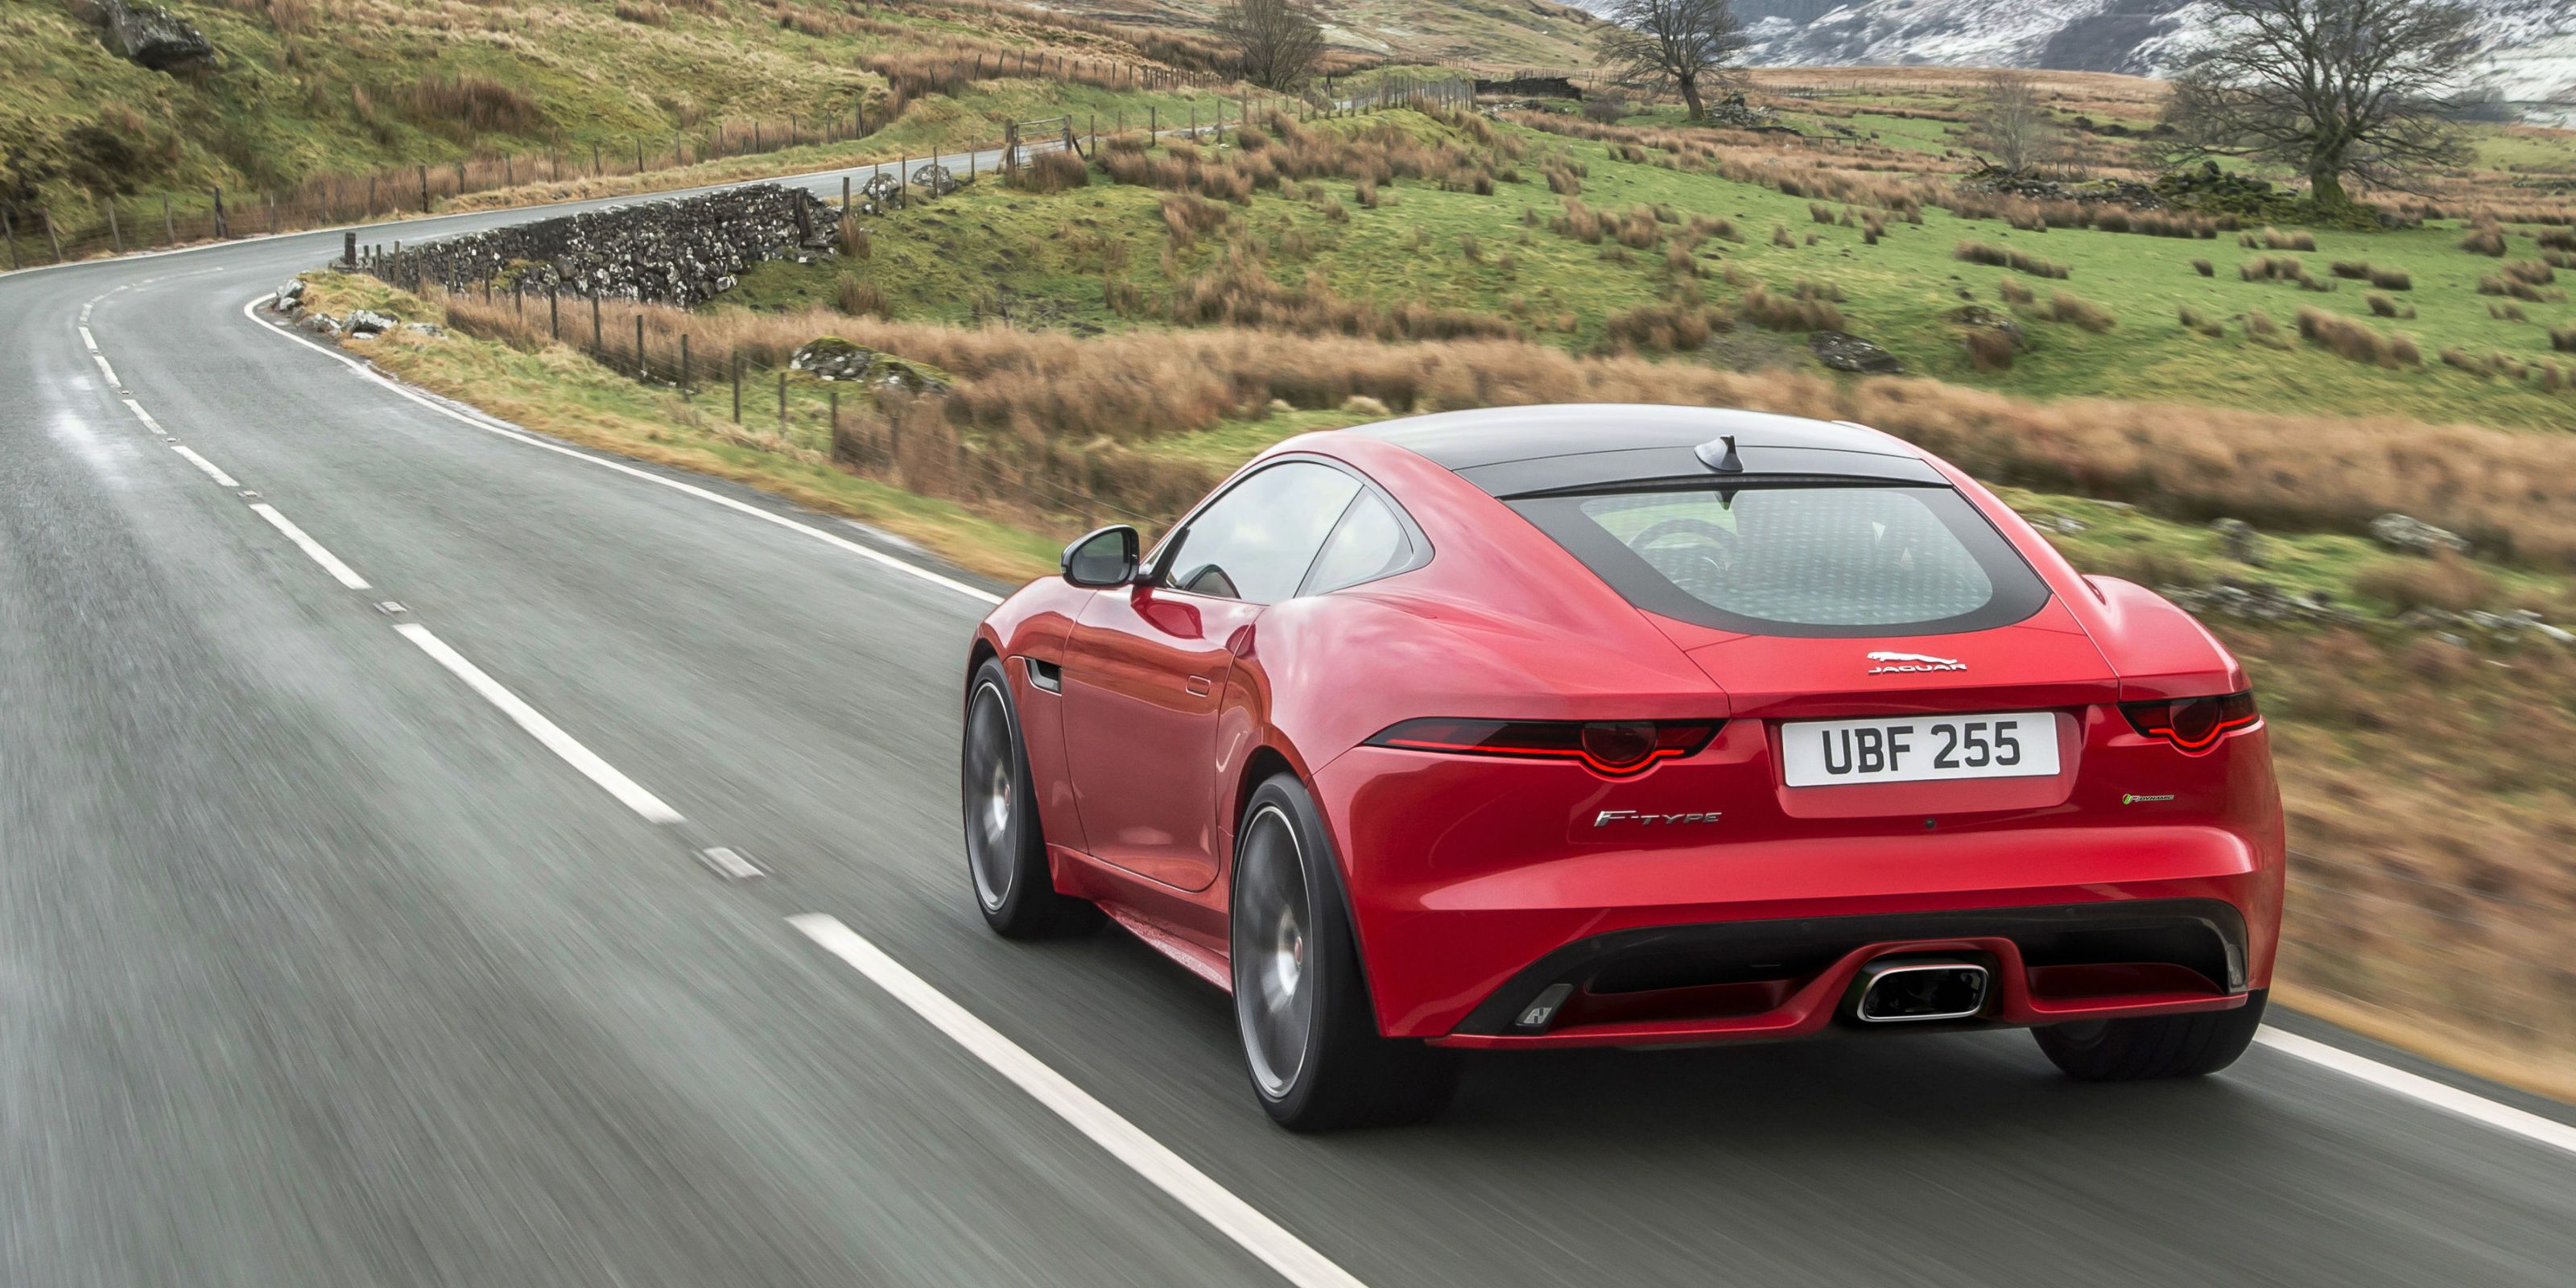 Jaguaru0027s Concern Over The Exhaust Note Of Its Sports Cars Borders On  Obsession. Every Model Of The F Type Coupe And Convertible Offers An  Upgraded Exhaust ...